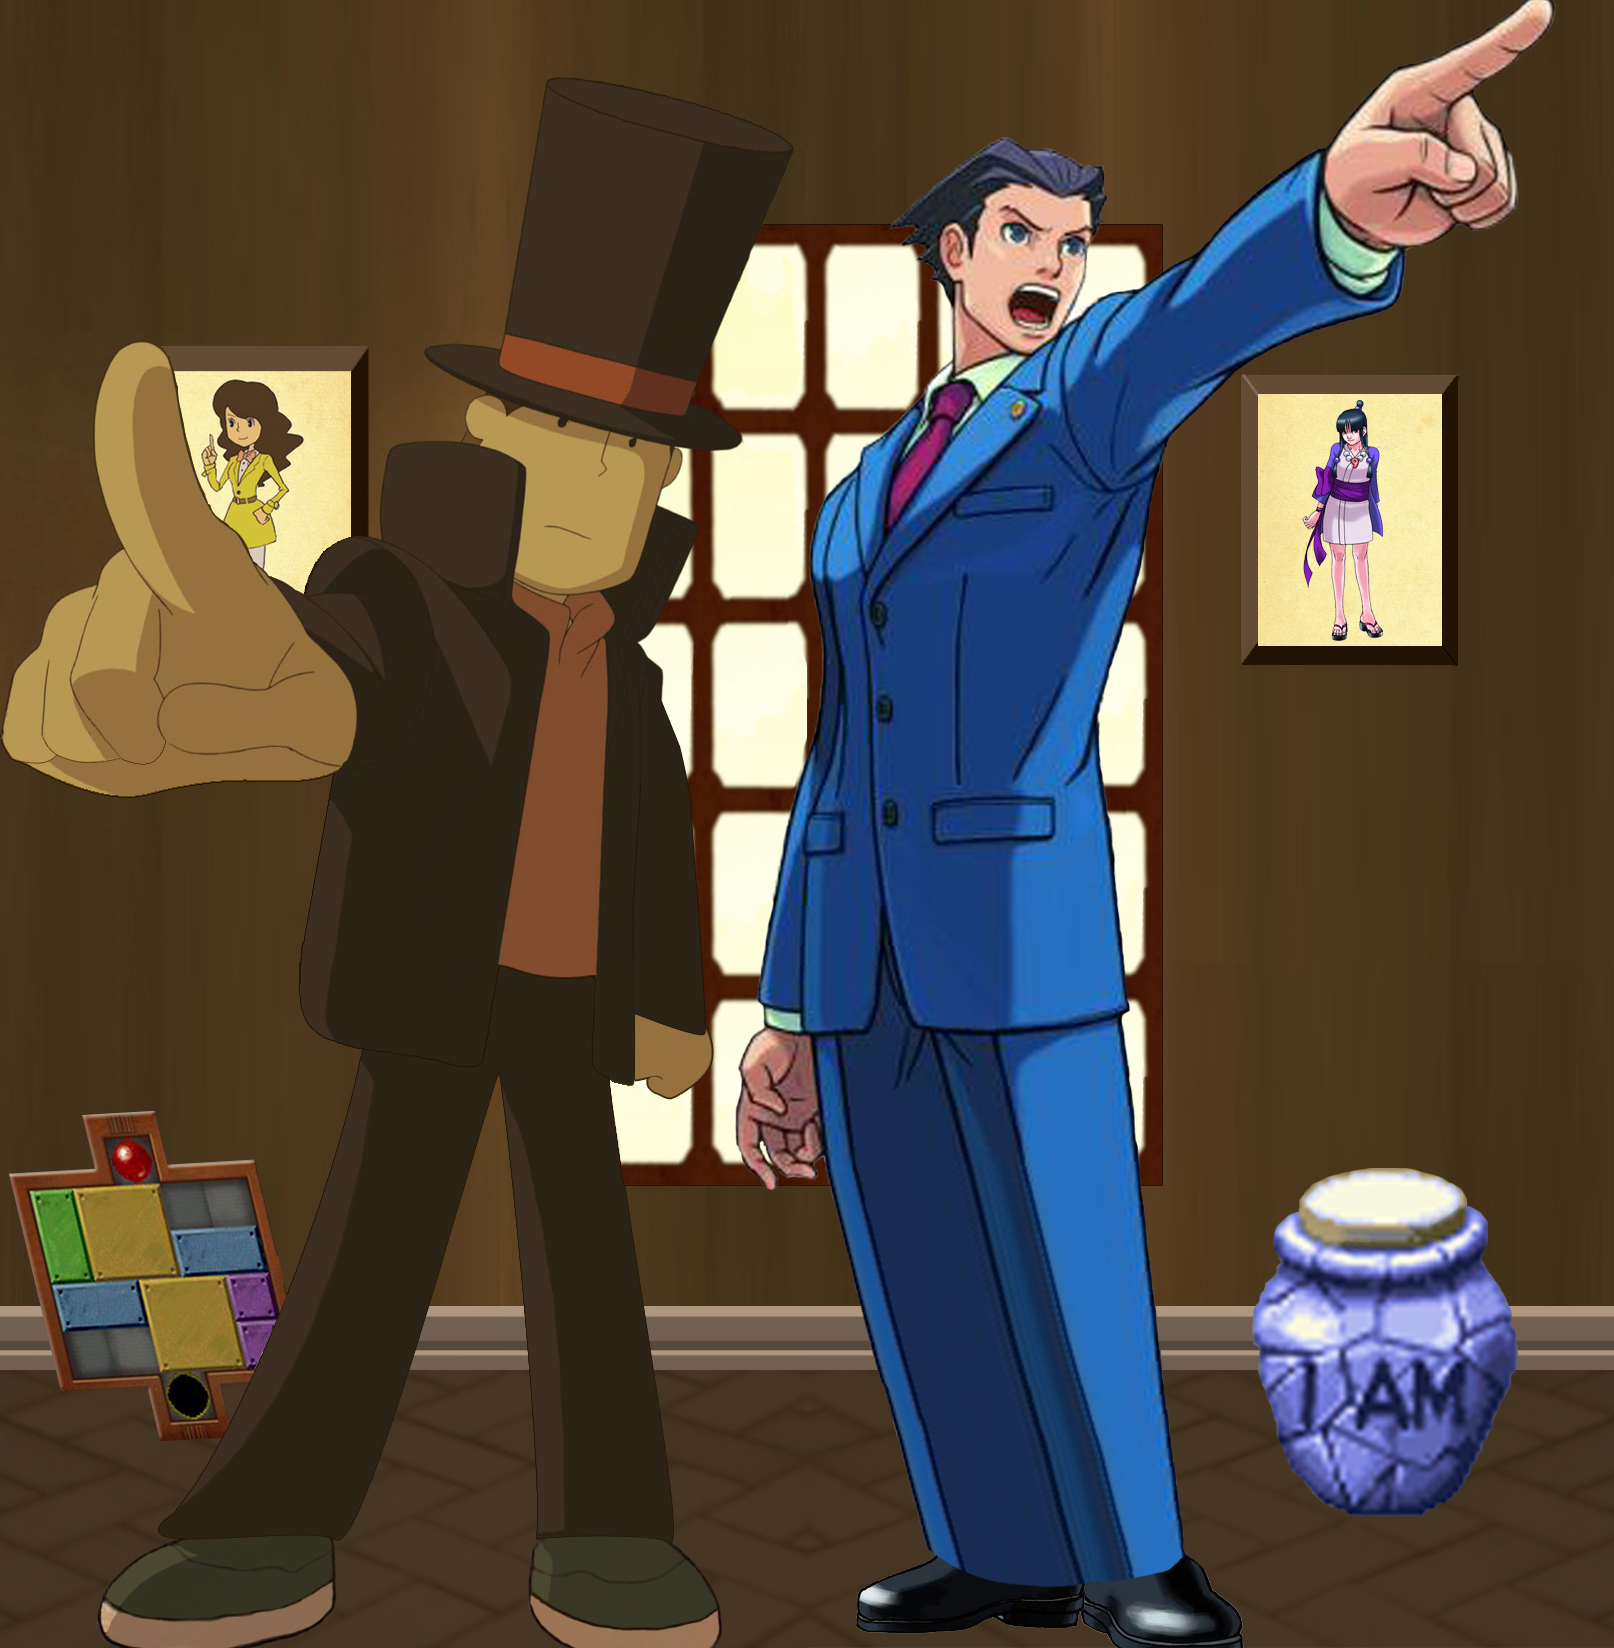 Phoenix Wright meets Layton